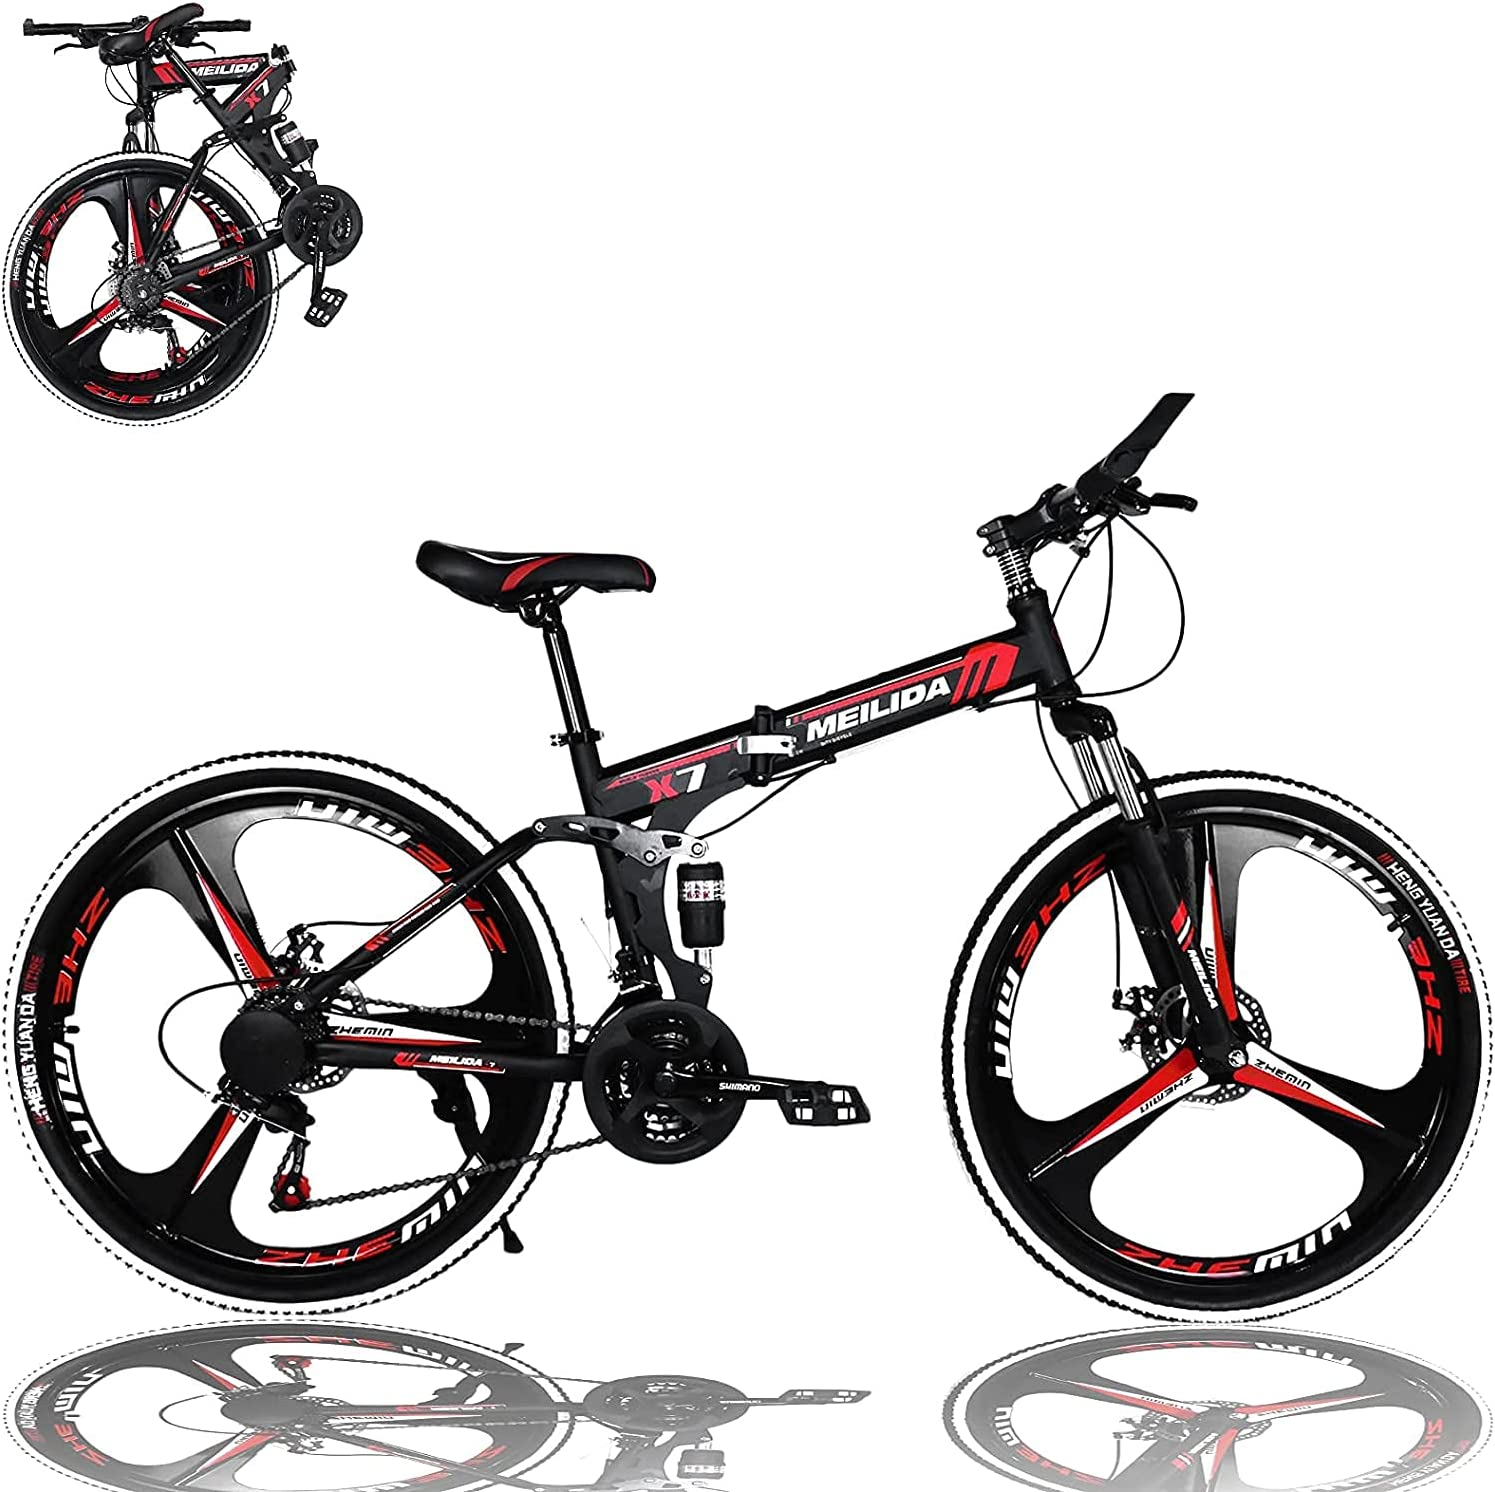 26In Folding Bicycle Mountain Bike - Large special price !! 21 F Branded goods Dual Brakes Disc Speed